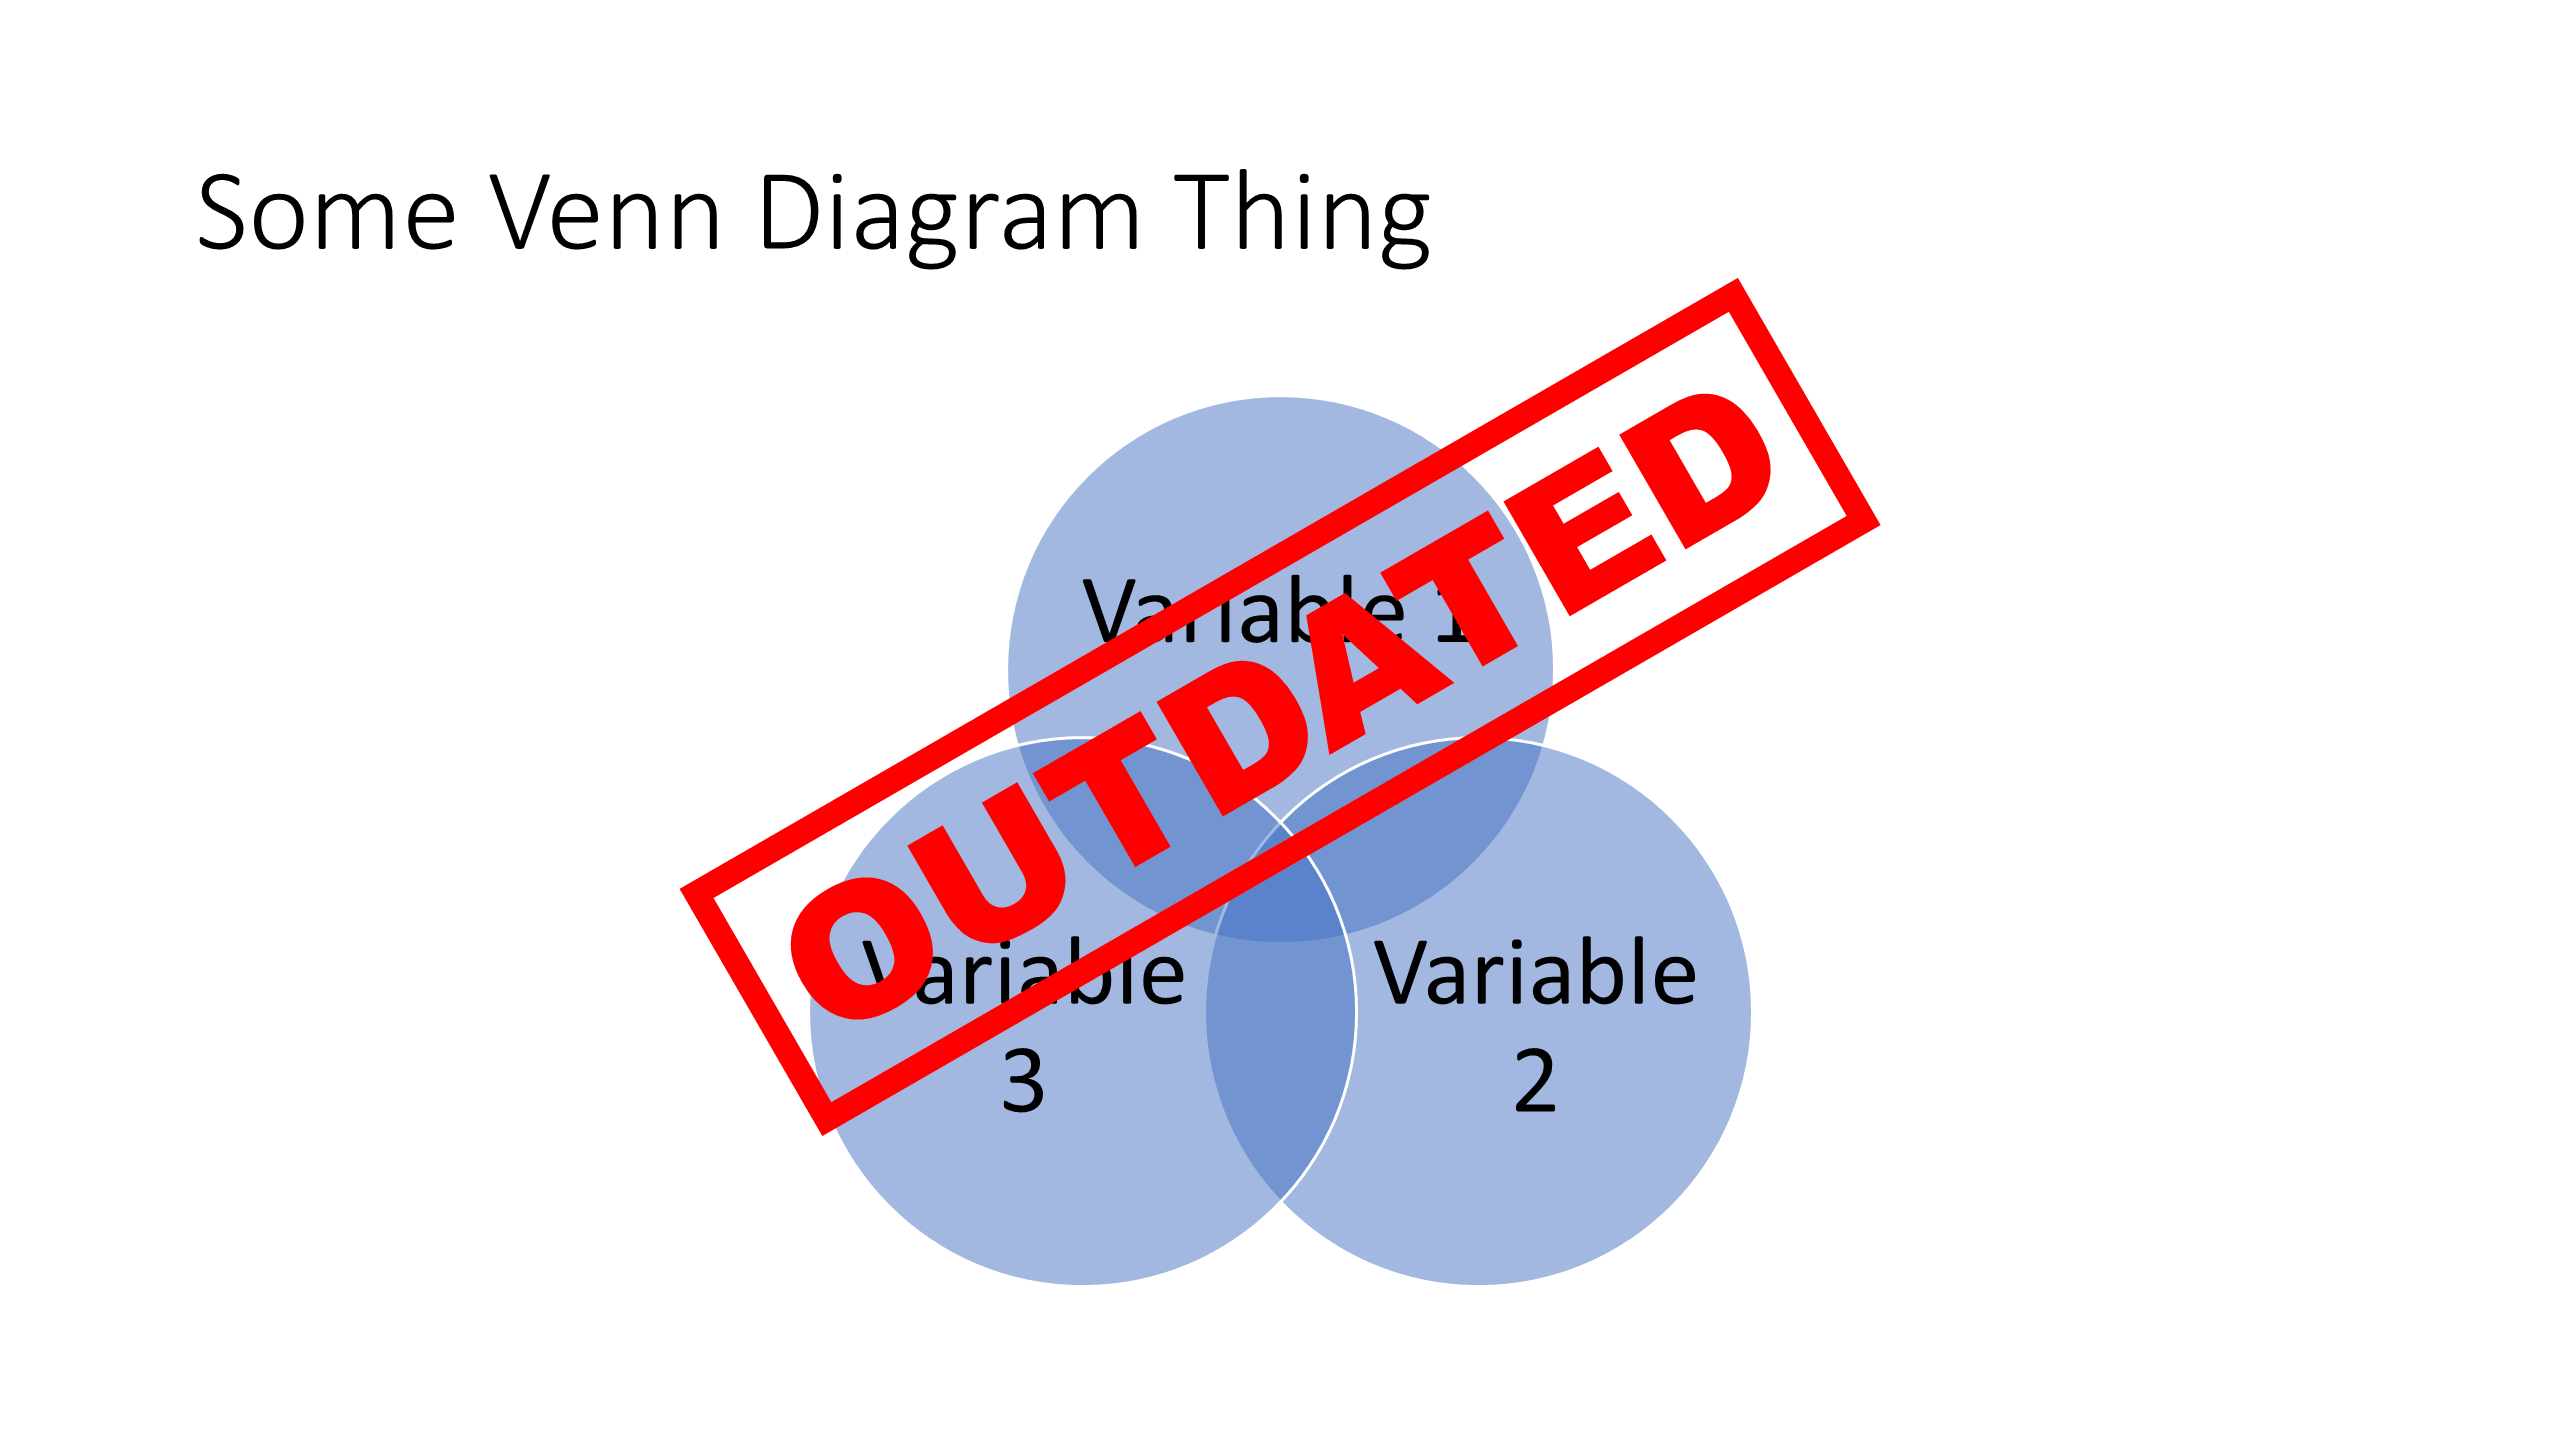 Here's How To Make a Stunning Venn Diagram in PowerPoint